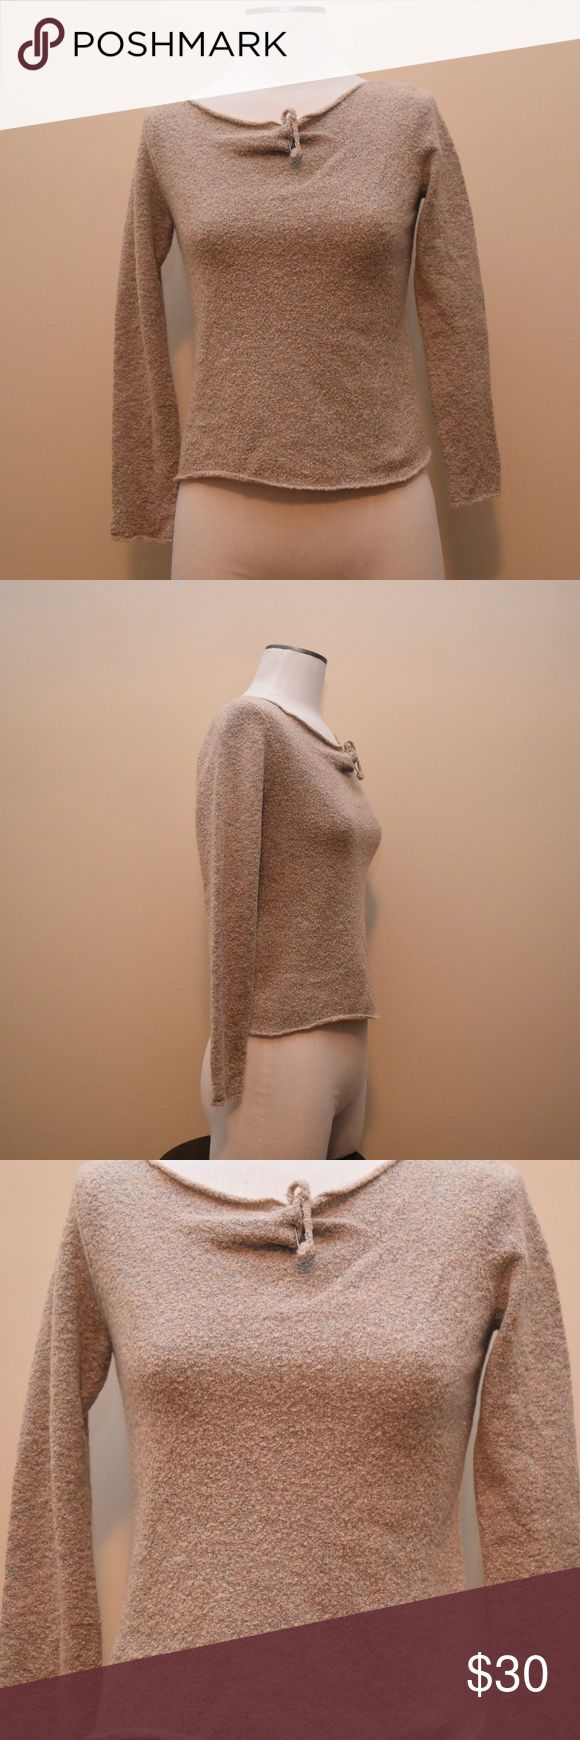 J. Jill Wool Long Sleeve Shirt This super chic J. Jill long sleeve is so ideal for any season! Even those summer nights when its chilly this perfect top will go with sweats, jeans, leggings, etc! The pin covered in Wool completely makes the top, adding more depth to it! Must have, ladies! 💌📦SAME DAY SHIPPING📦💌 ⭐️⭐️5 STAR RATINGS⭐️⭐️ ❤️🛍PACKAGED WITH LOVE🛍❤️ J. Jill Tops Tees - Long Sleeve